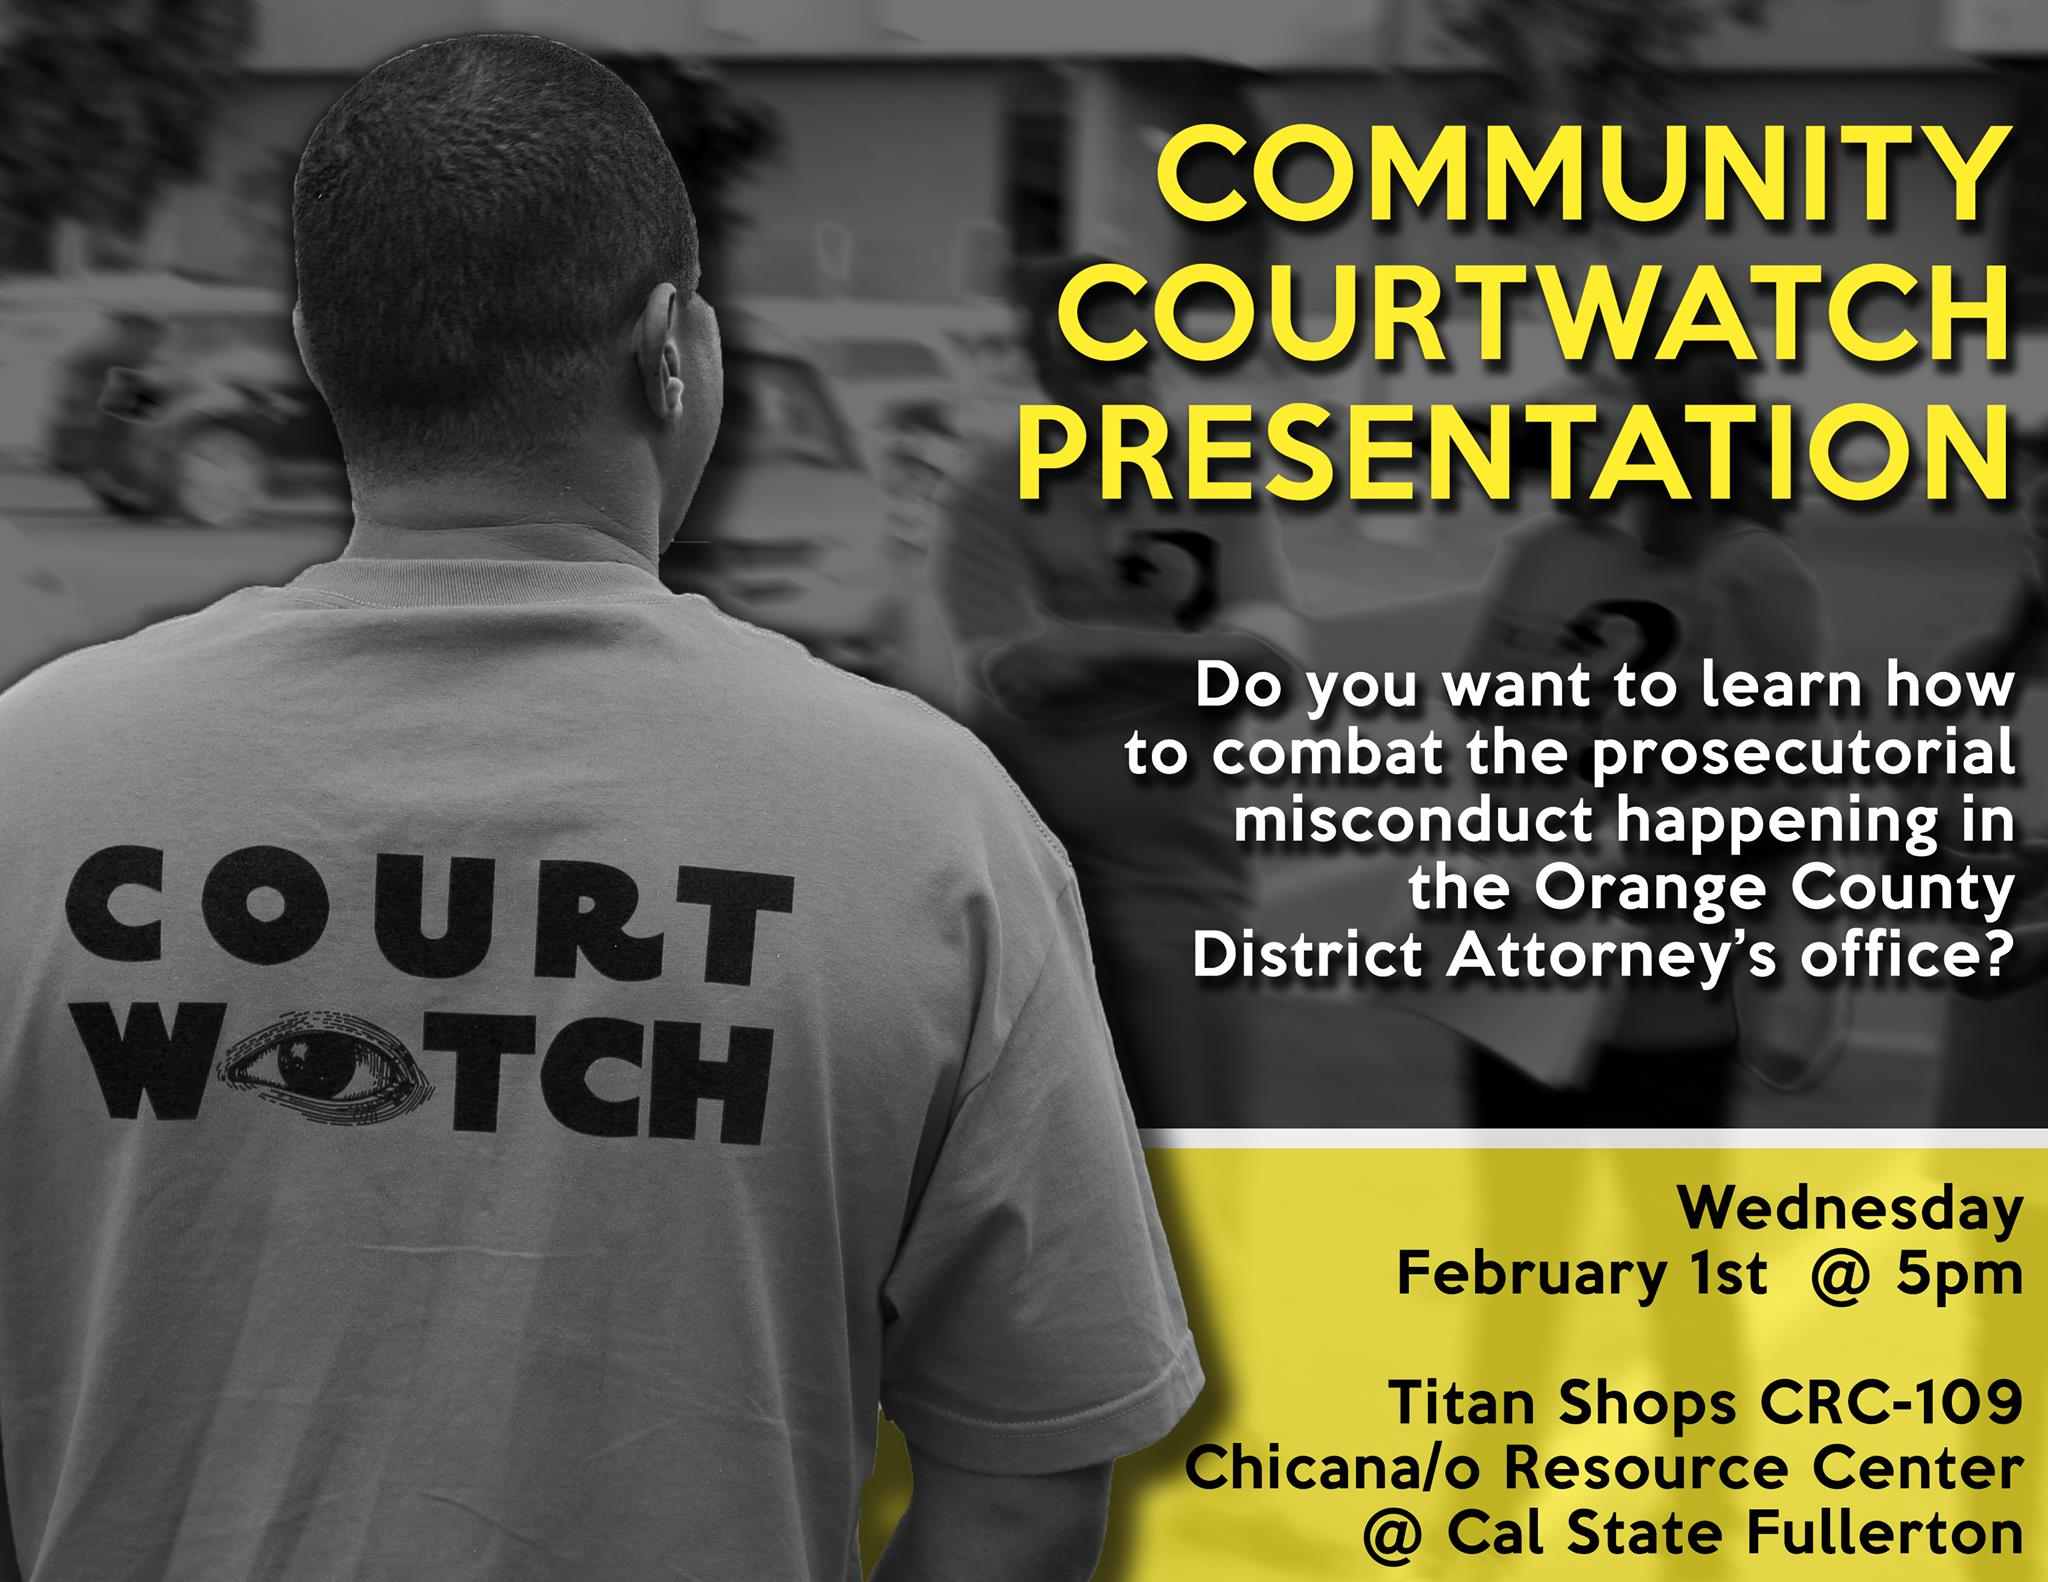 Community Courtwatch Presentation.jpg